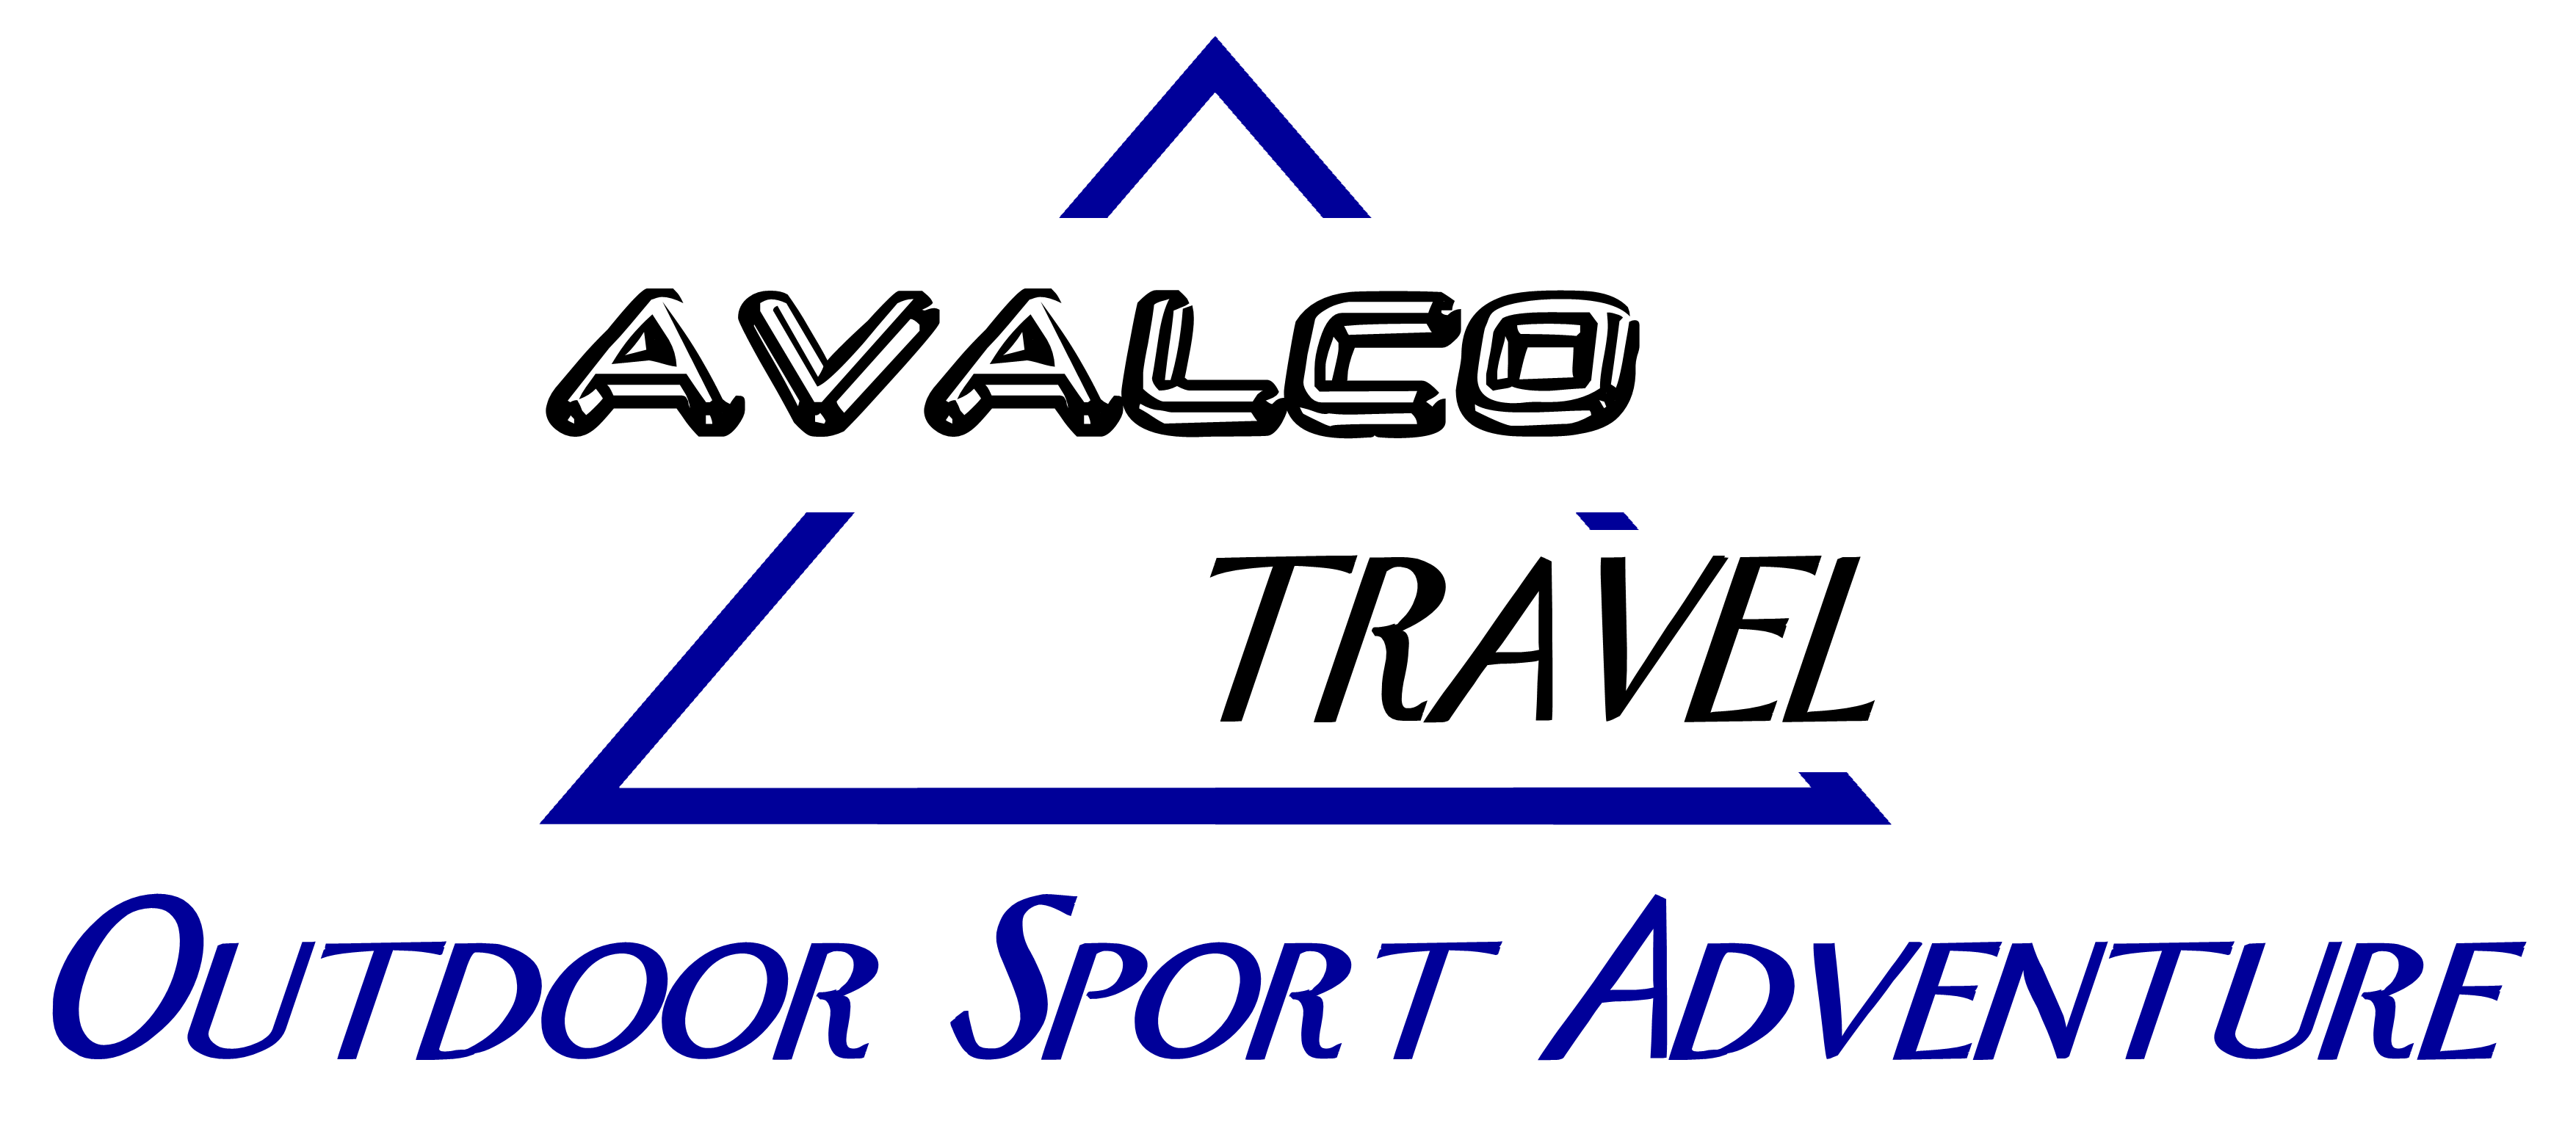 Avalco Travel Outdoor Sport Adventure